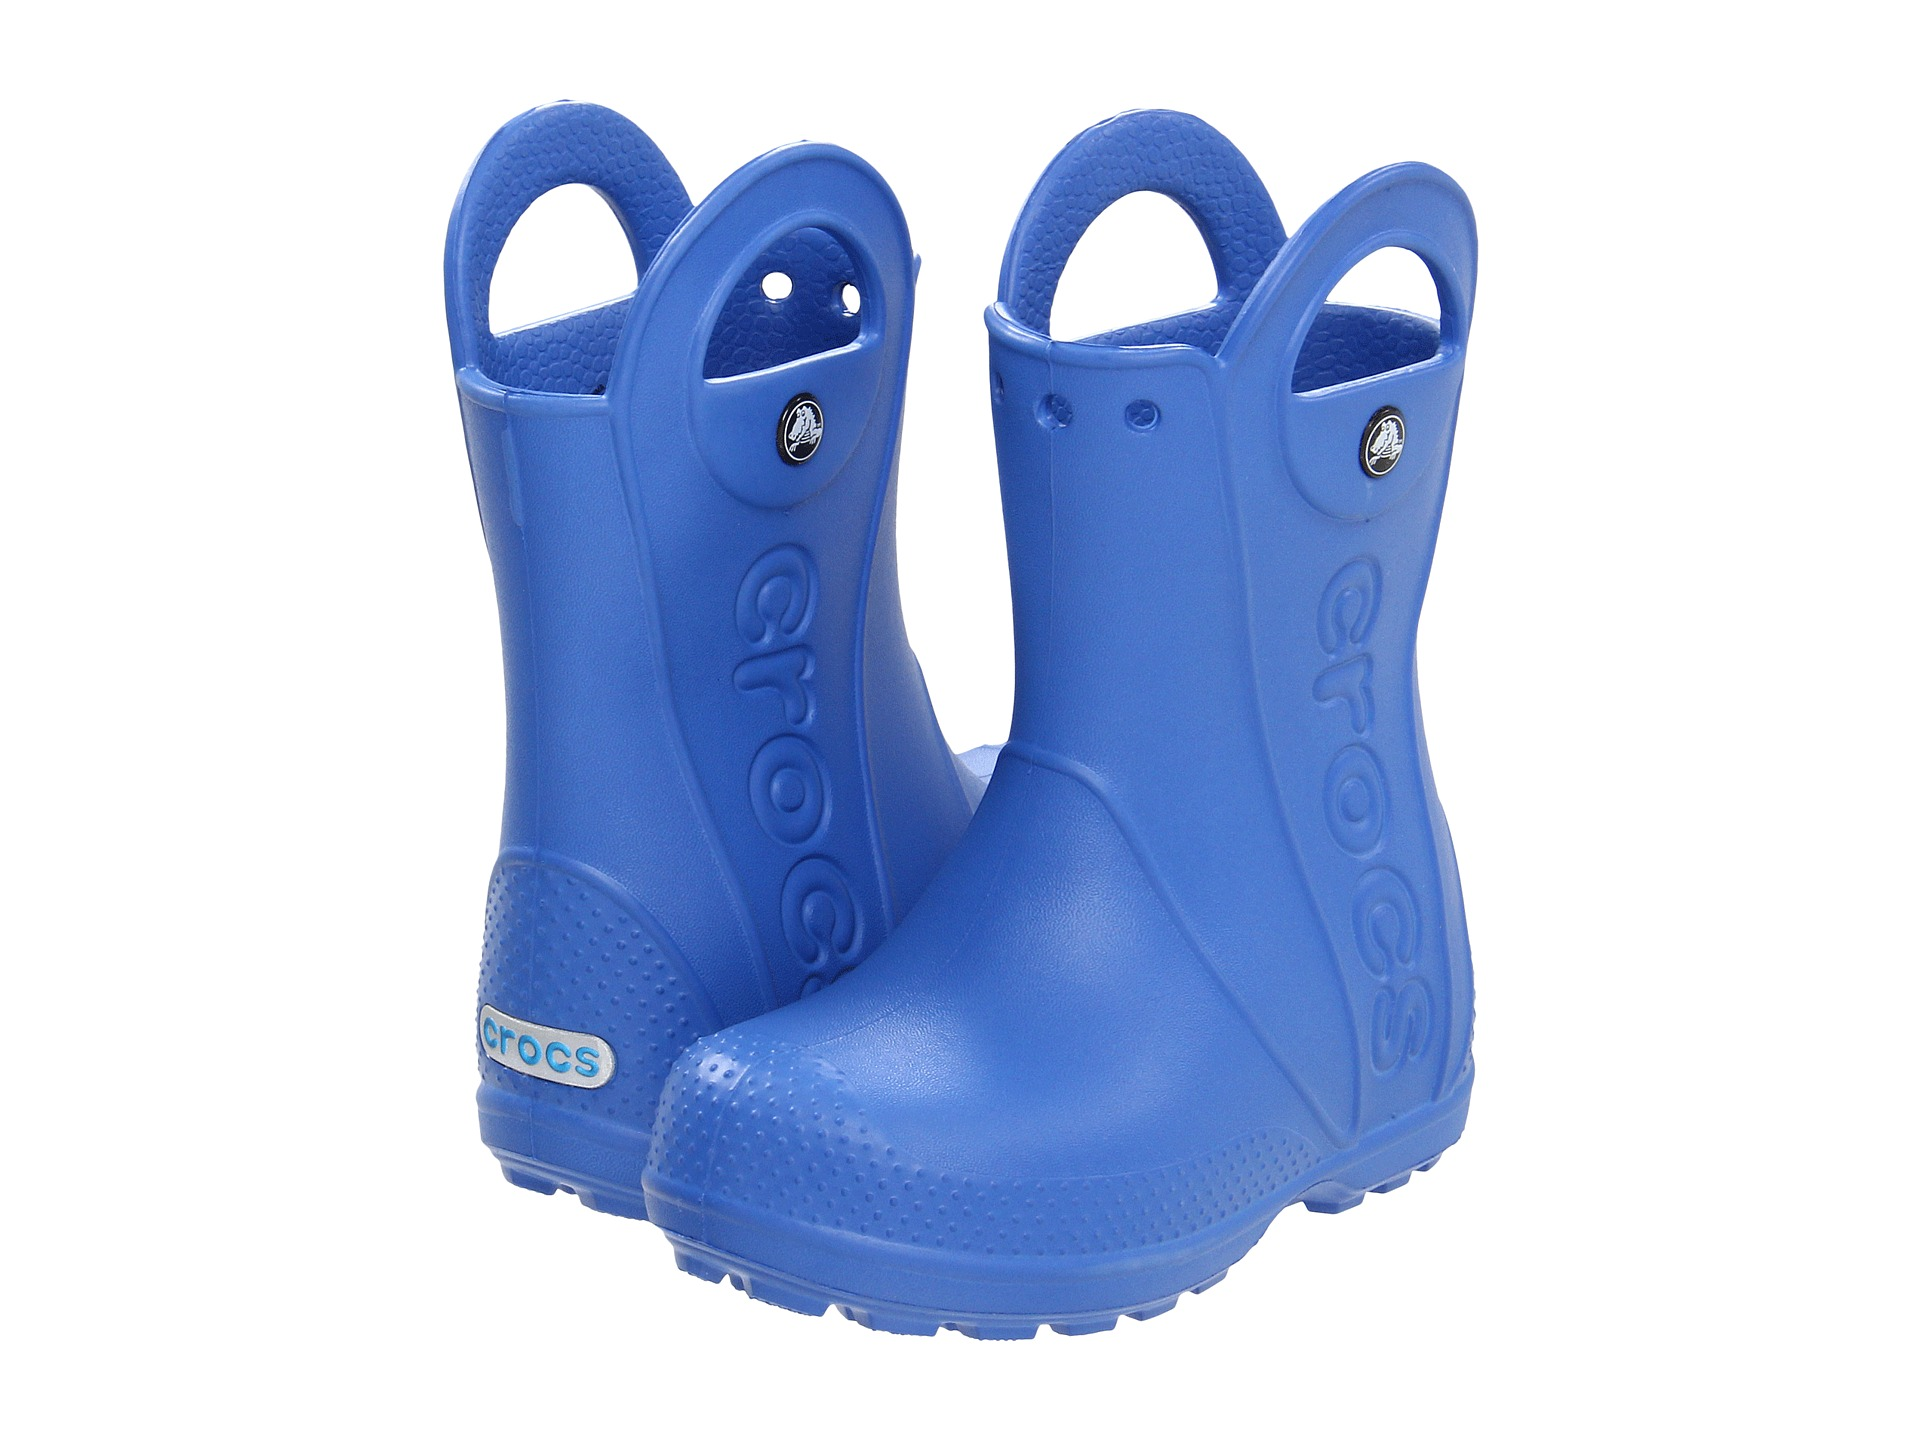 9269d238c1ab7 Head on over to Crocs.com to score the Kids  Handle It Rain Boot for just   14.99 (reg  34.99) when you use promo code HANDLE57 at checkout!